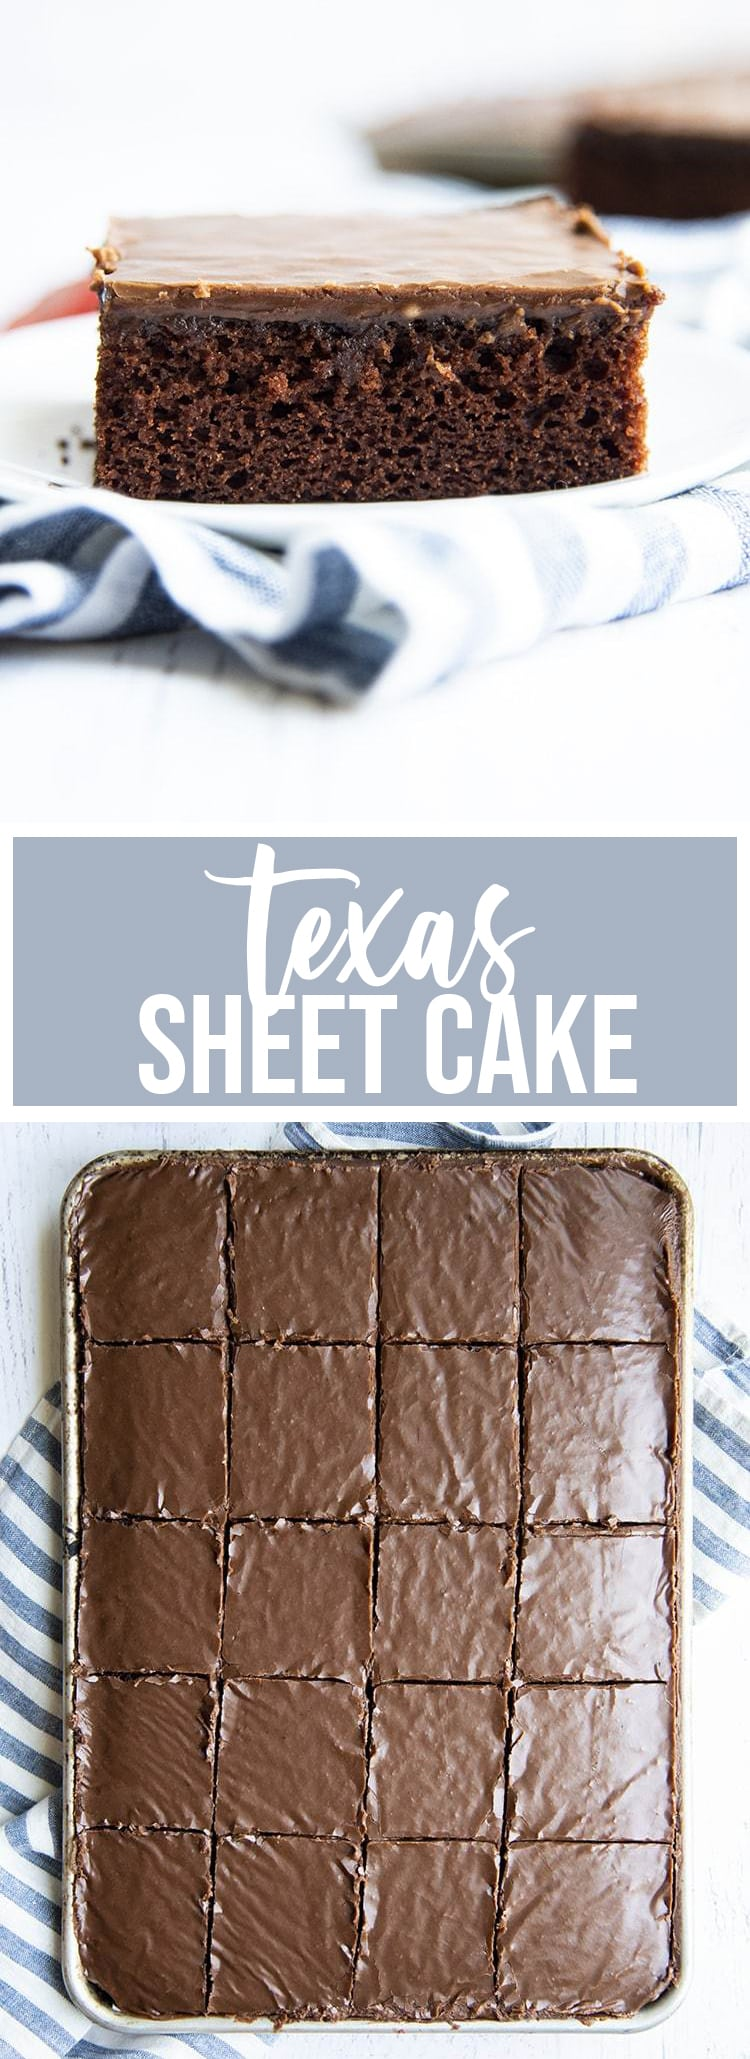 A collage of two photos of Texas sheet cake. The first is a slice of Texas Sheet Cake on a plate. The second is a pan of Texas sheet cake cut into slices.